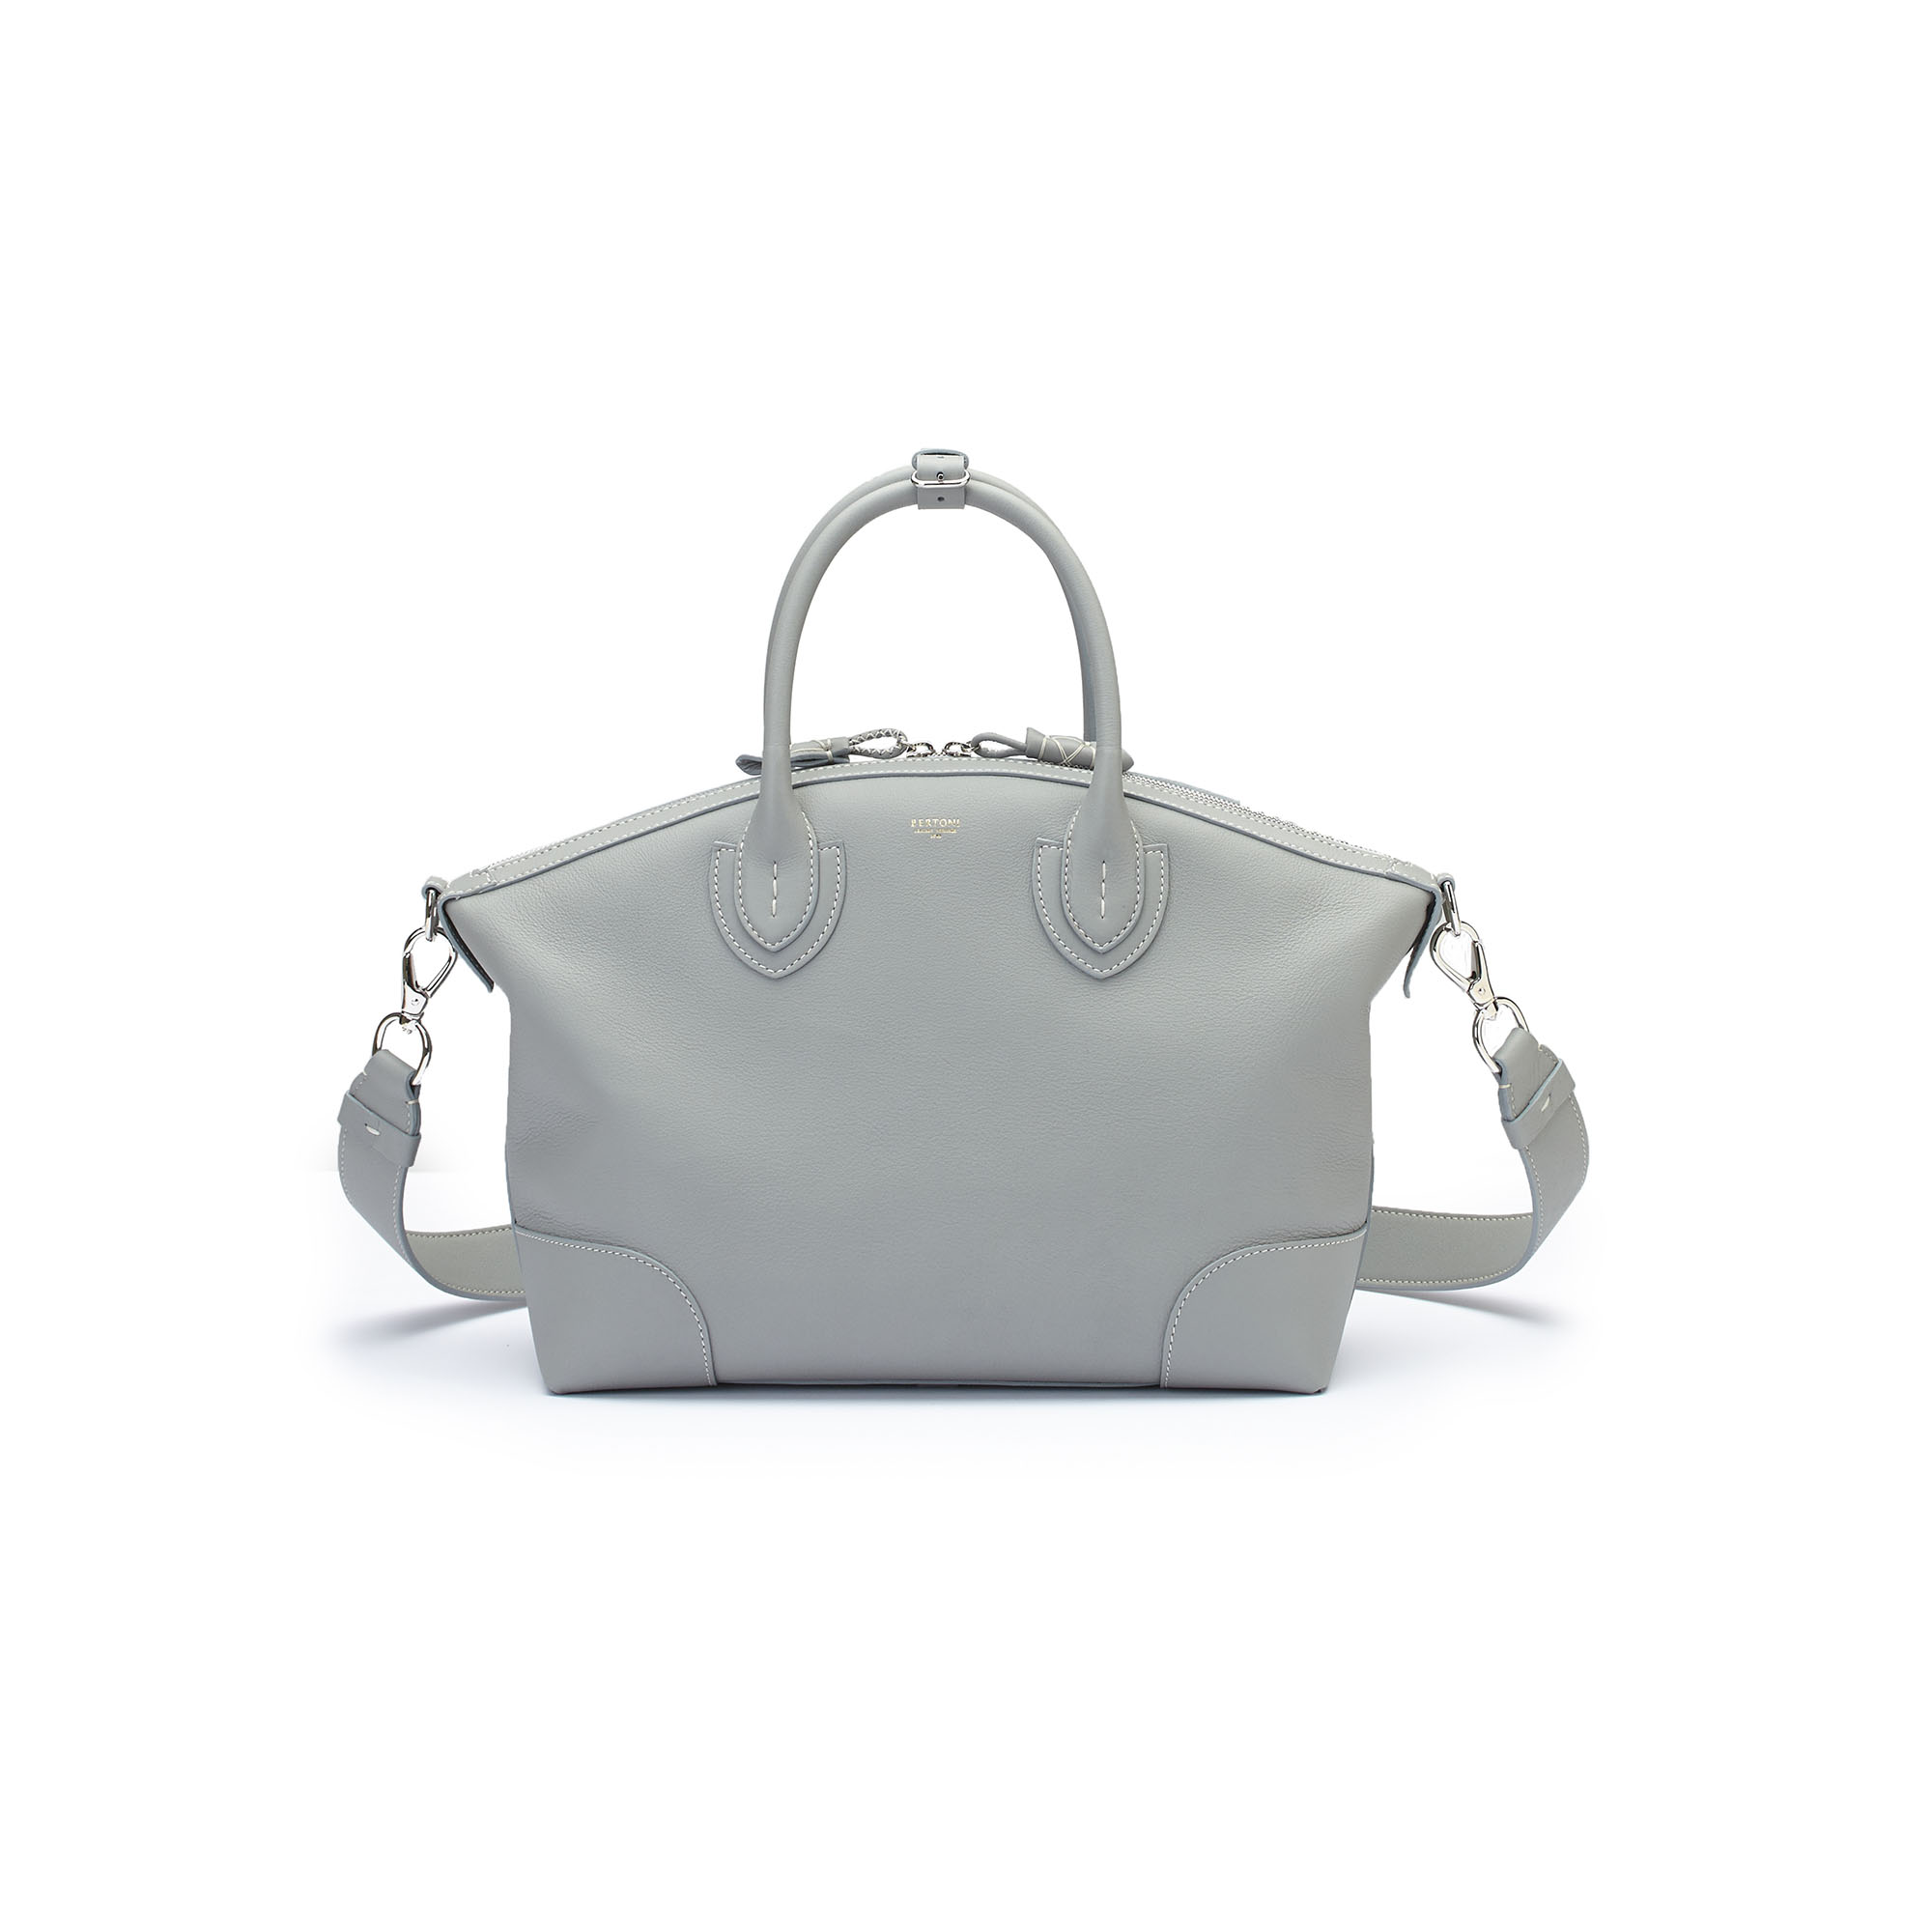 The sage soft calf Anija bag by Bertoni 1949 03